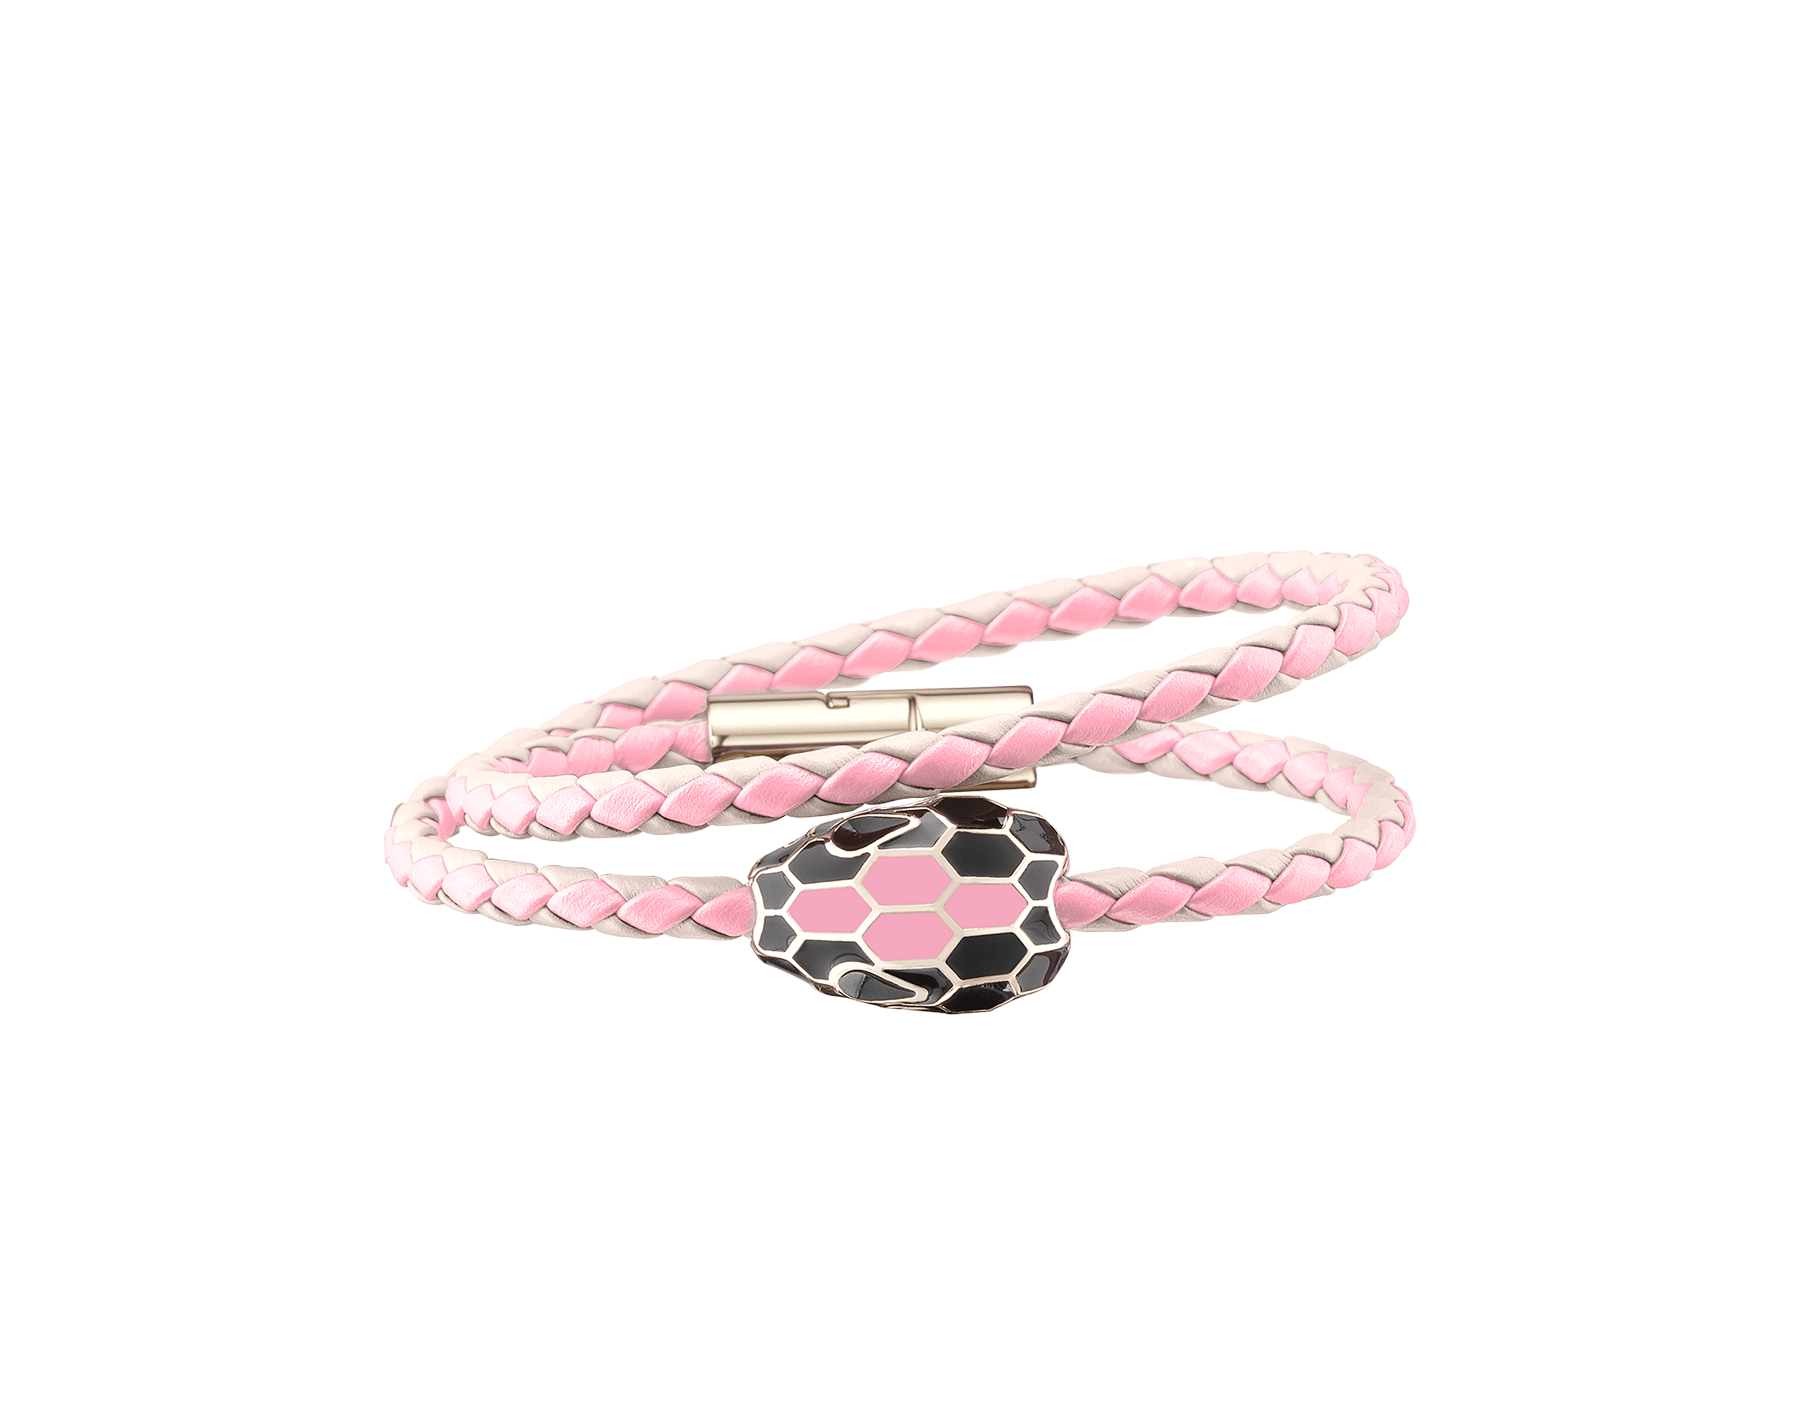 Serpenti Forevermulti-coiled braid bracelet in milky opal and flamingo quartz woven calf leather with an iconic snakehead décor in black and milky opal enamel. SerpDoubleBraid-WCL-MOFQ image 1